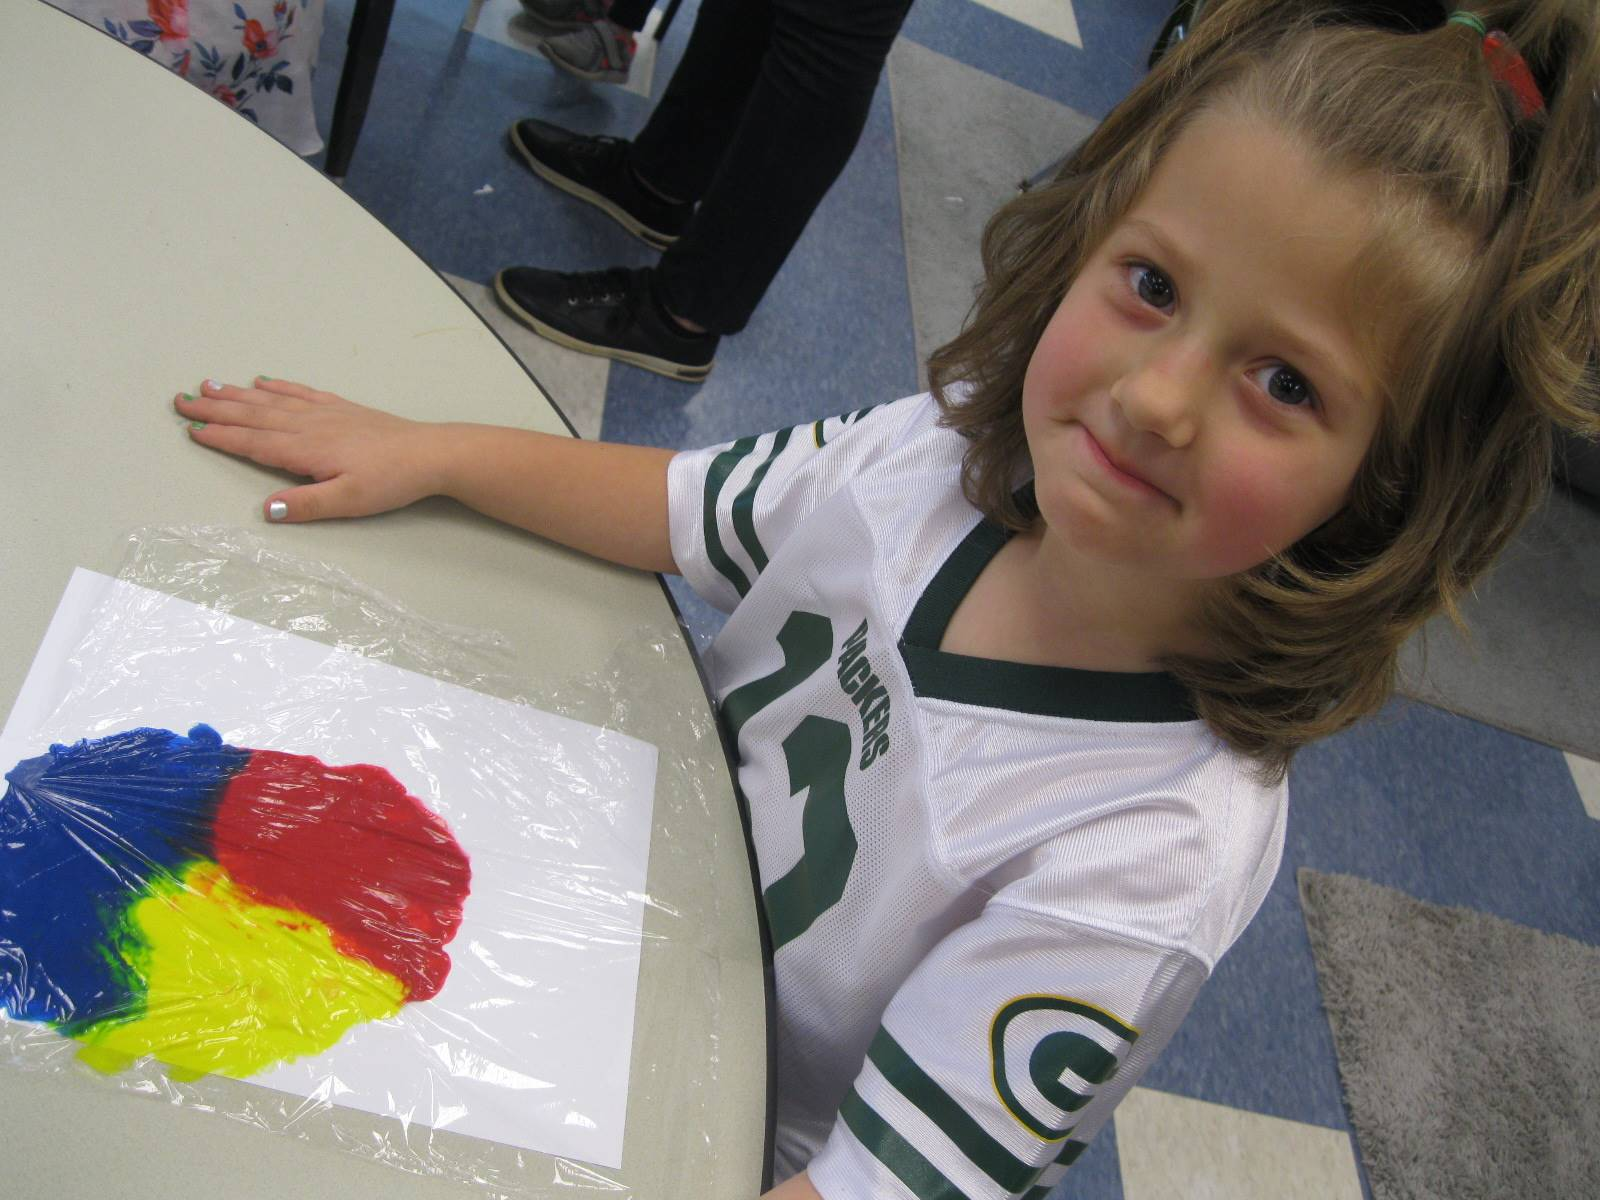 A student shows her art painting.